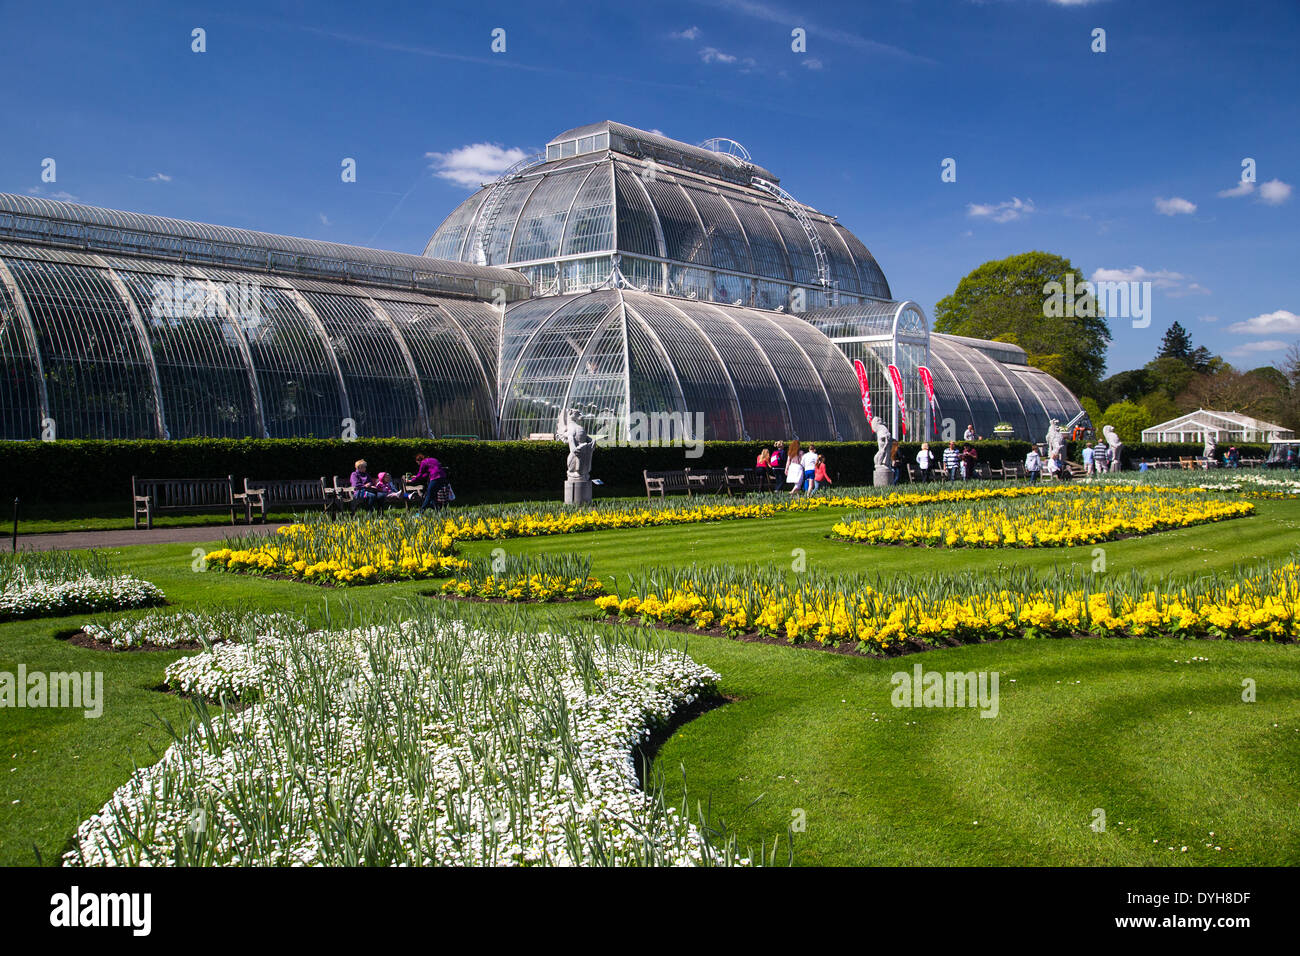 The Palm House at Kew Gardens-The finest example of a  Victorian Glass structure with 16,000 panes of glass - Stock Image